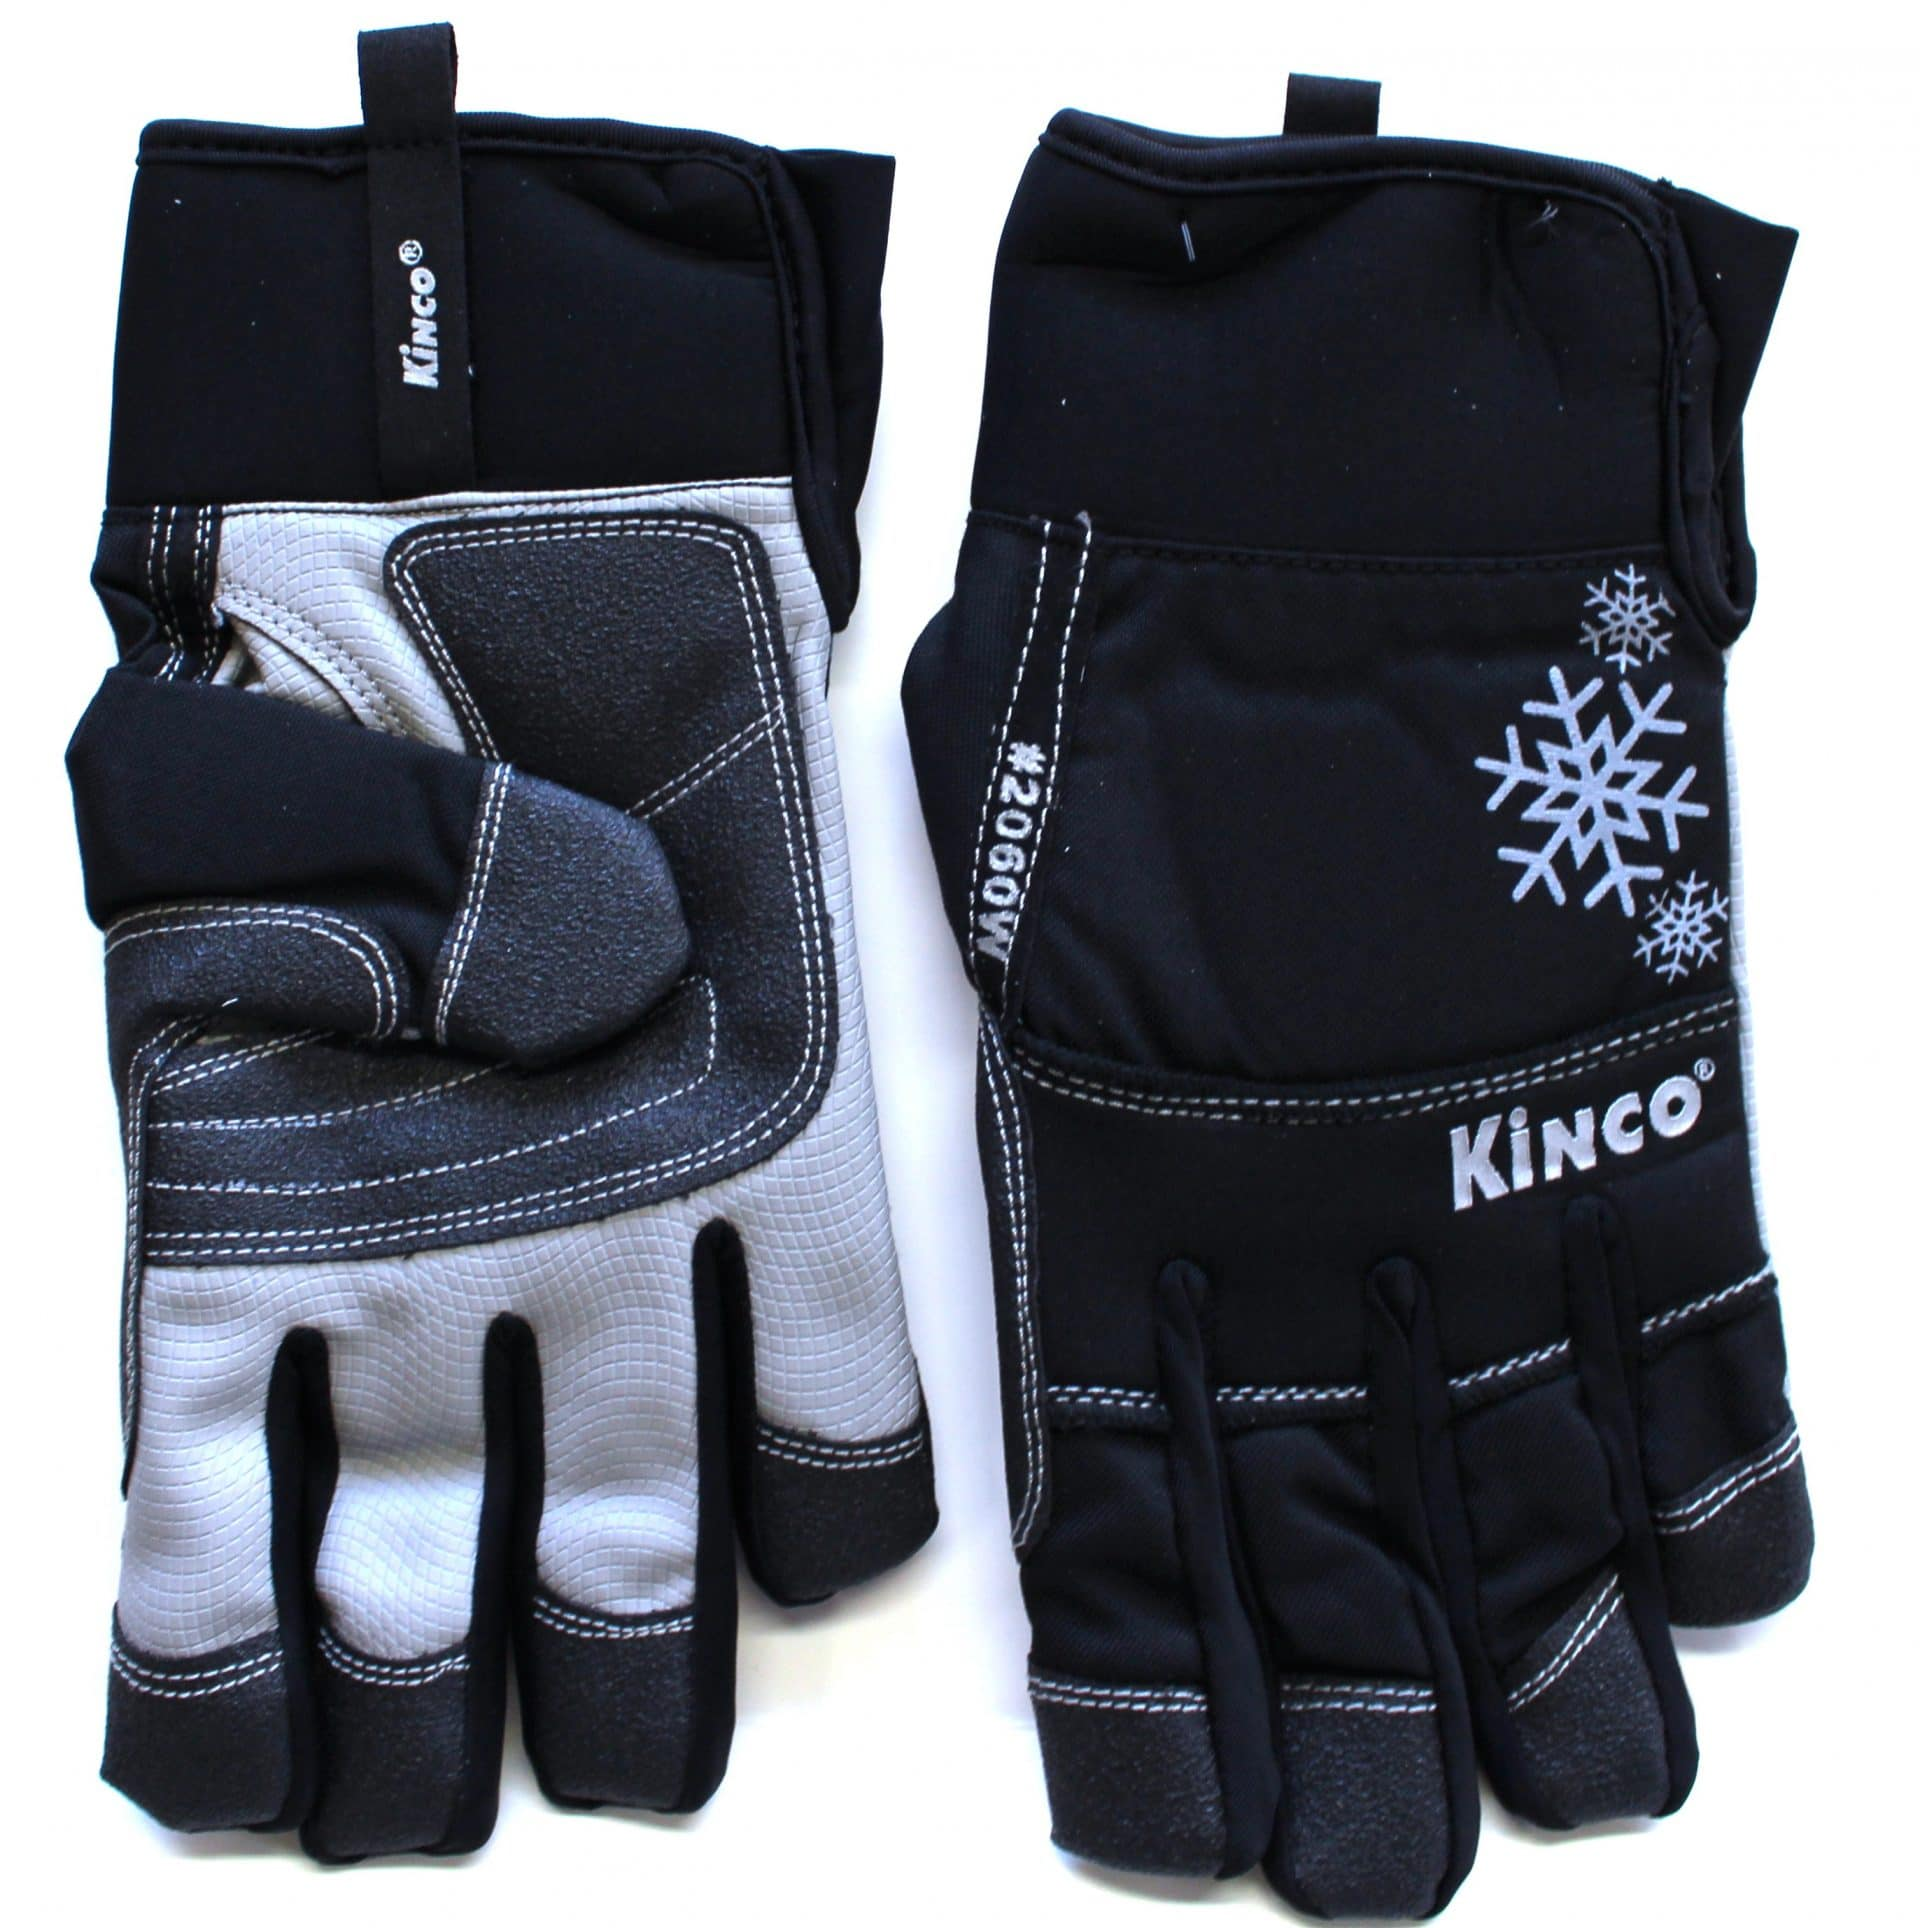 Kinco Women's Lined Winter Gloves 2060W